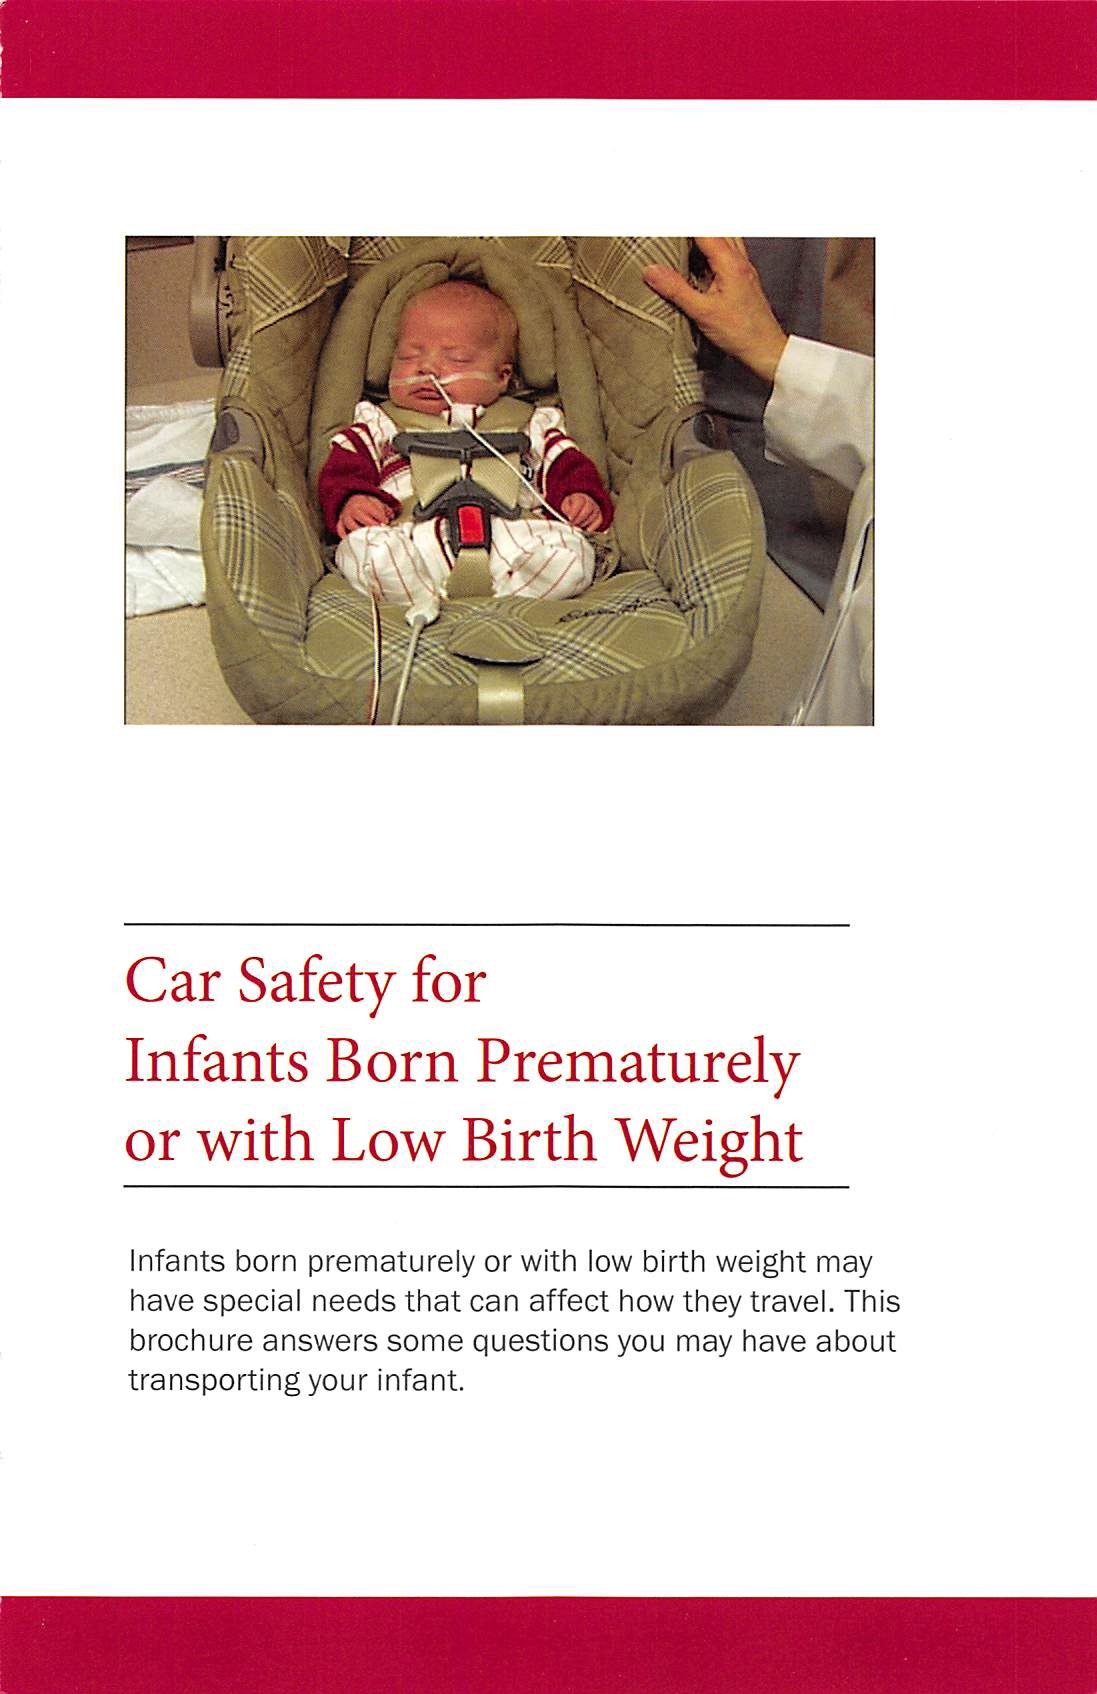 low birth weight in infants